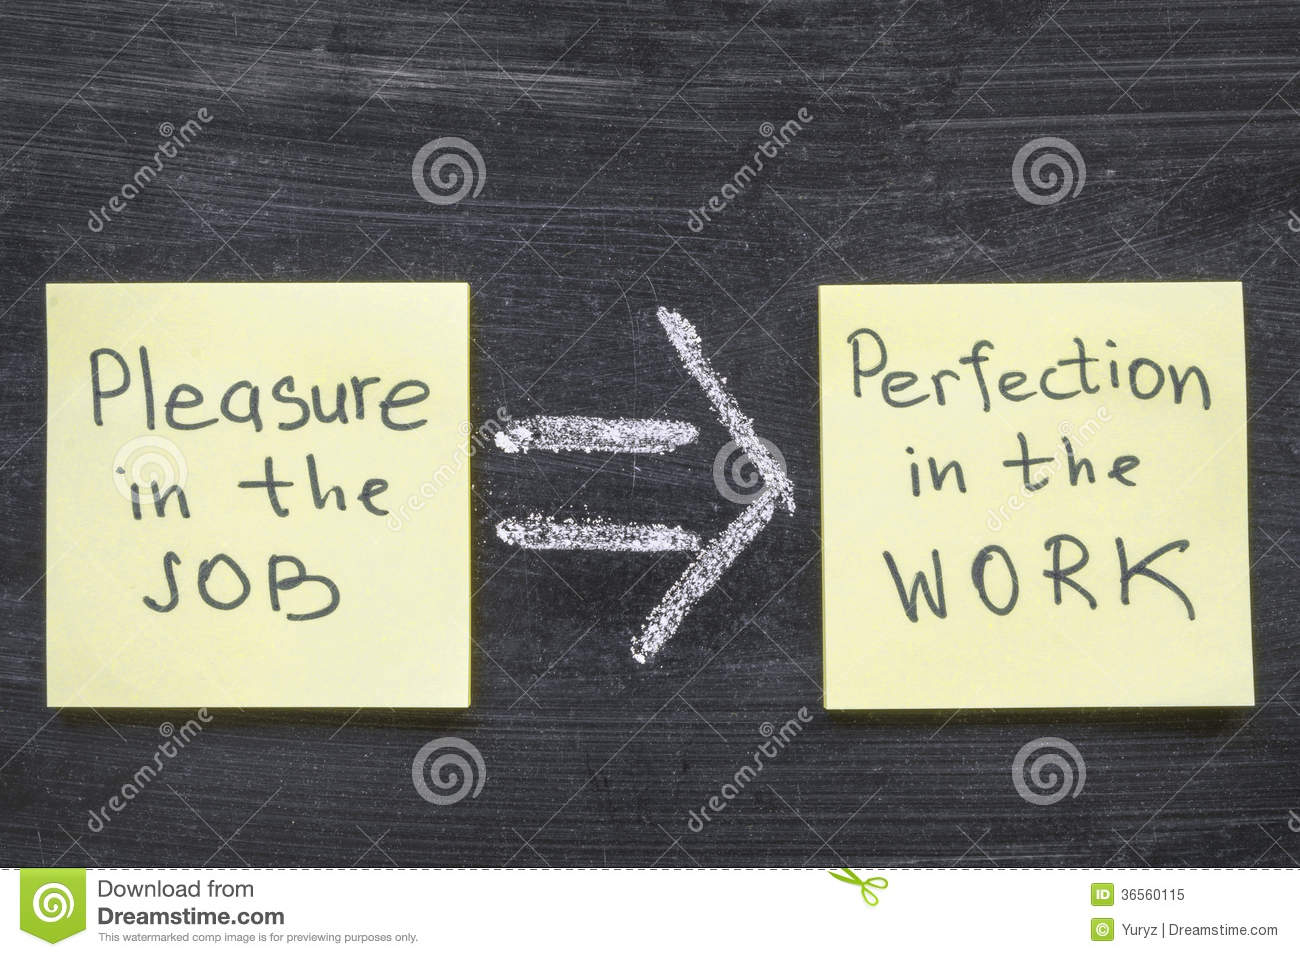 pleasure in the job puts perfection in the work essay